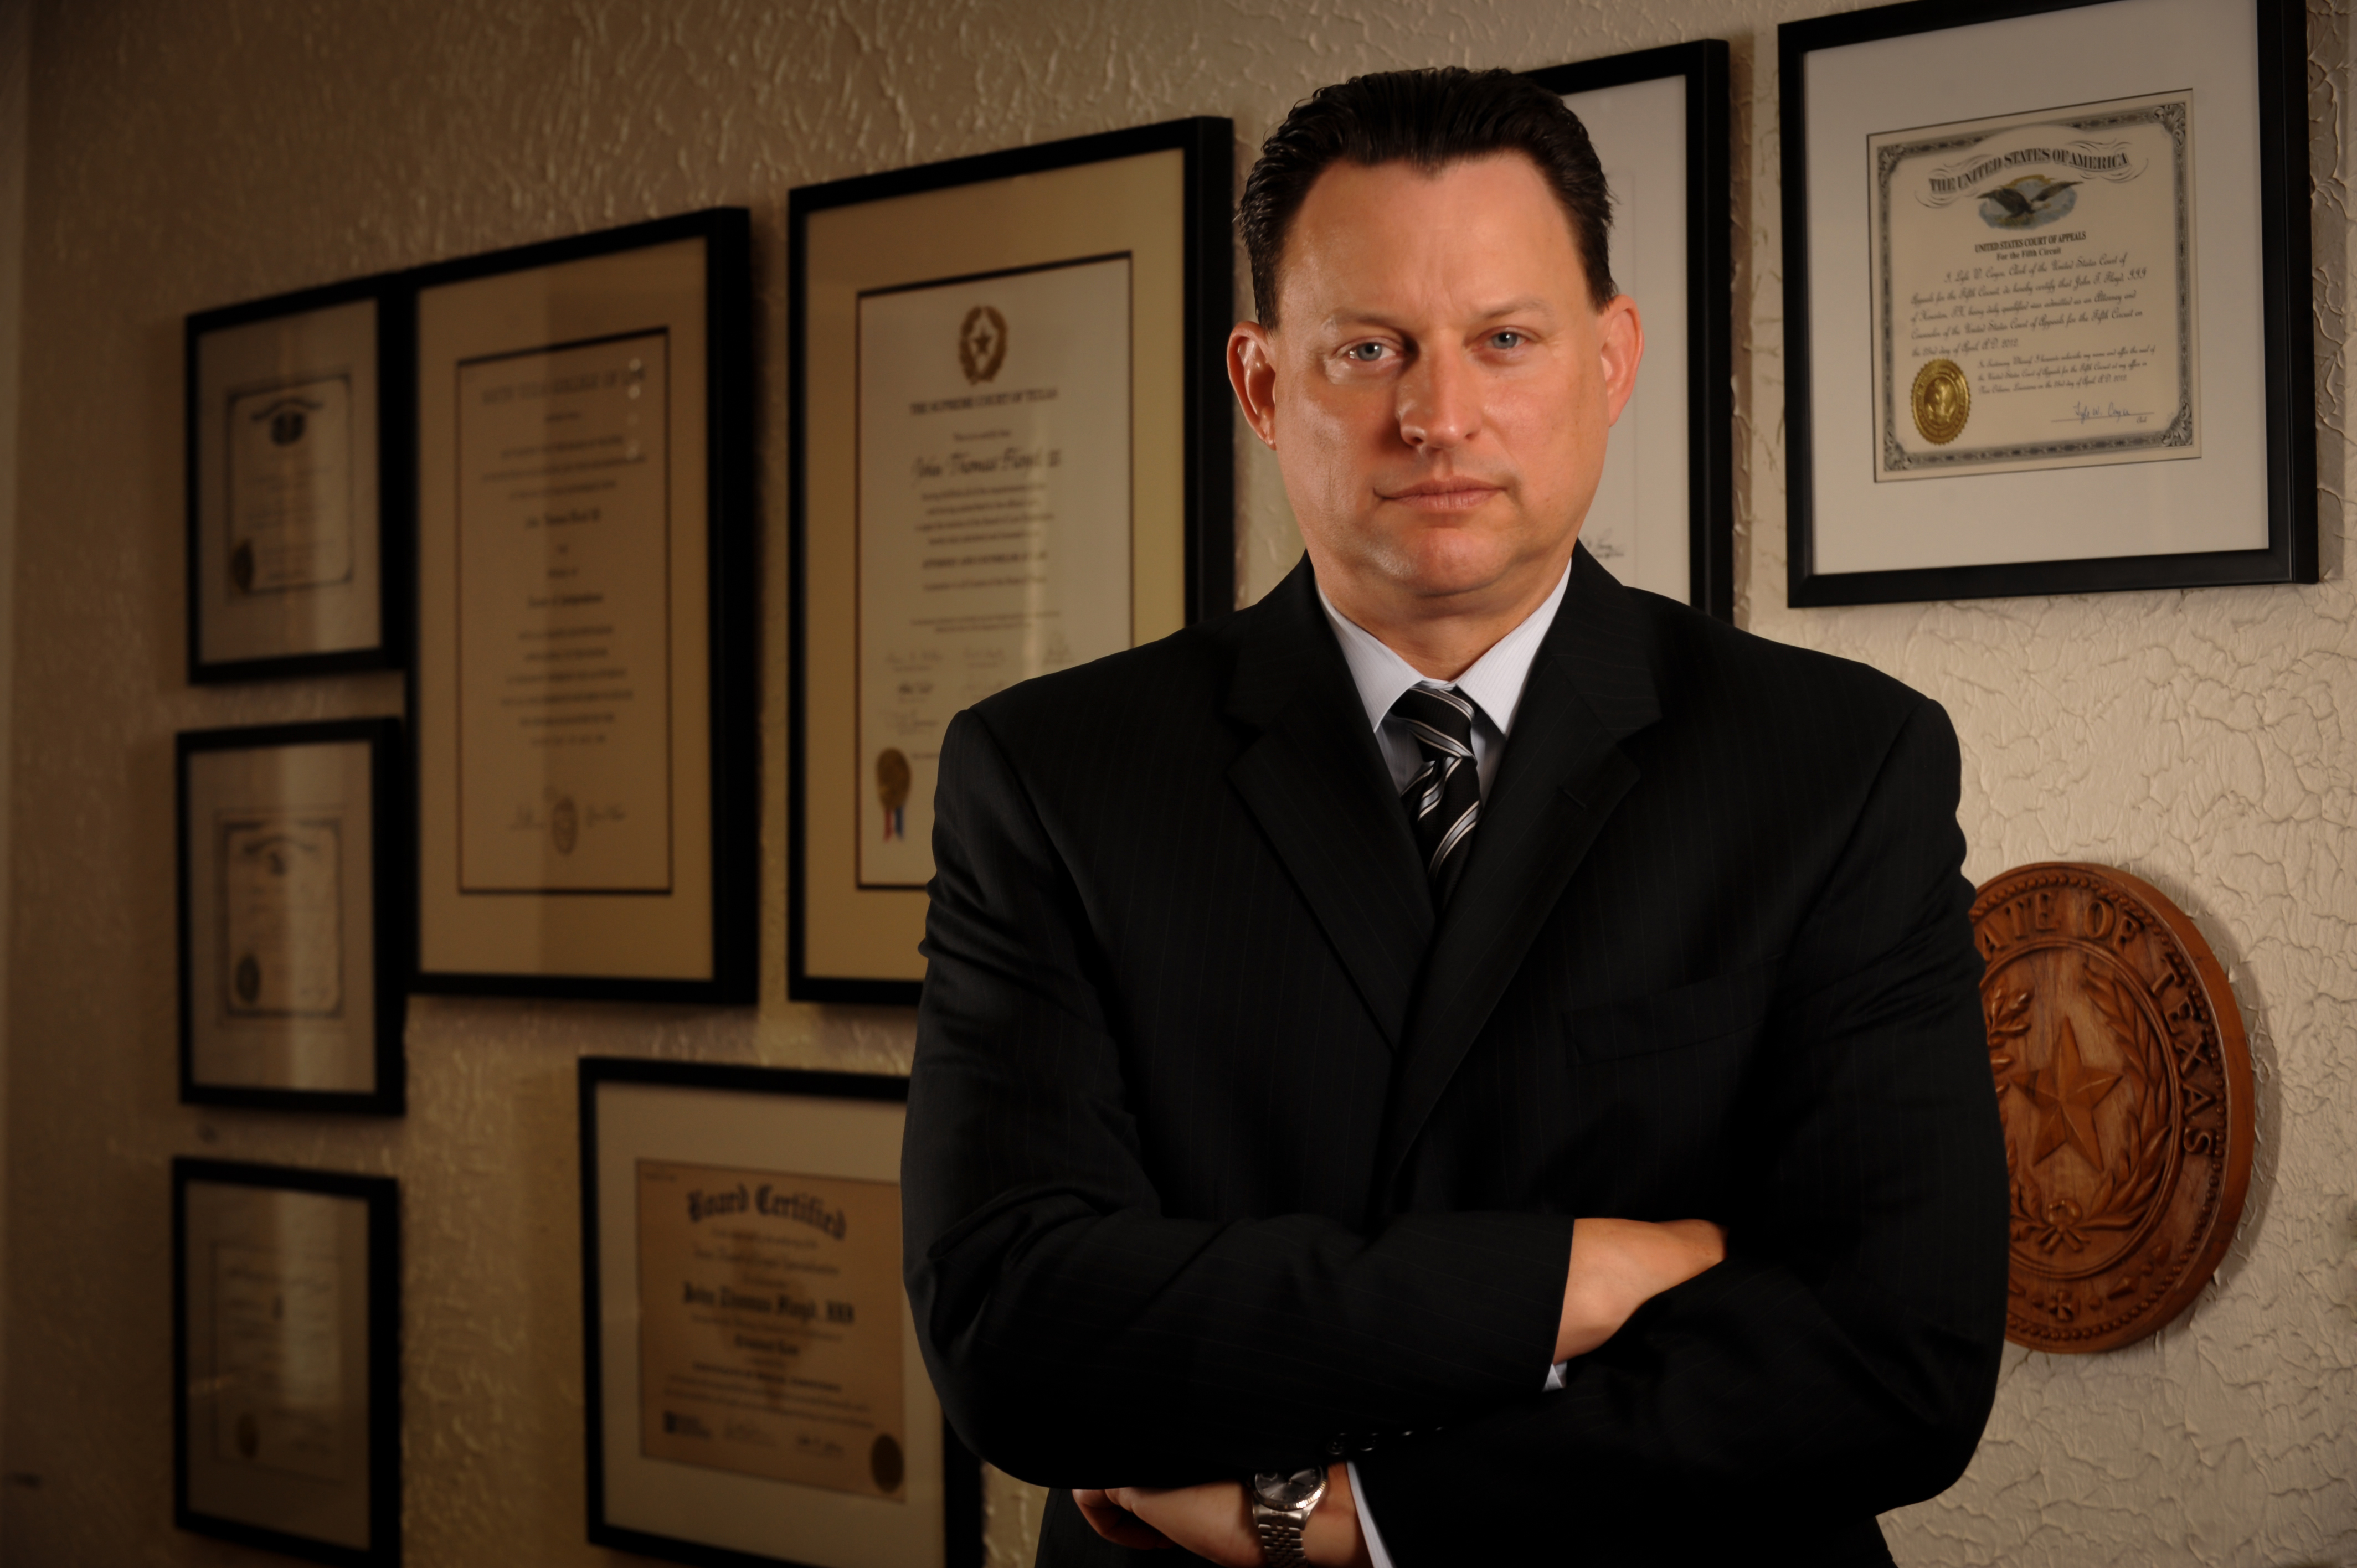 John T Floyd Law Firm In Houston, Tx  (713) 2240. How To Become A Teacher In Virginia. Easy Online Masters Degree Programs. American National Bank Mortgage. Bachelor Degree Online Fast Sat Prep Irvine. How To Install New Roof Shingles. Solar Water Heater Installation. Linux Server Configuration Rehab Bartender. Budget Moving And Storage Academy Hair Design